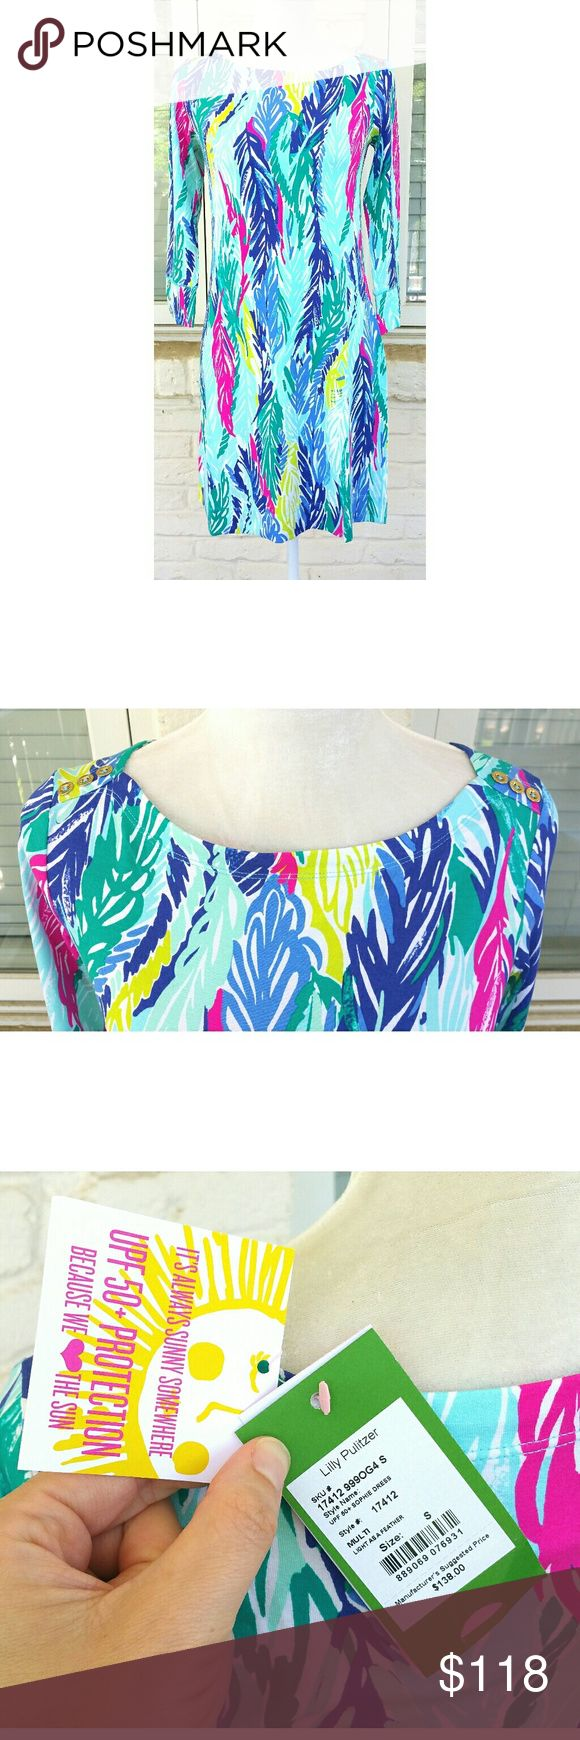 NWT, Lilly Pulitzer UPF 50+ Sophie Dress Dress smartly and stylishly for sunny days in the Sophie dress. ; Three-quarter sleeve dress in printed stretch rayon jersey. ; Fabric offers UPF 50+ protection. ; Boat neckline. ; Gold-tone buttons accent the shoulders and cuffs. ; Straight hemline. ; Slip-on. ; Unlined. ; 93% rayon, 7% spandex. ; Machine wash cold, lay flat to dry. ; Imported. Multicolor Print: LIGHT AS A FEATHER Lilly Pulitzer Dresses